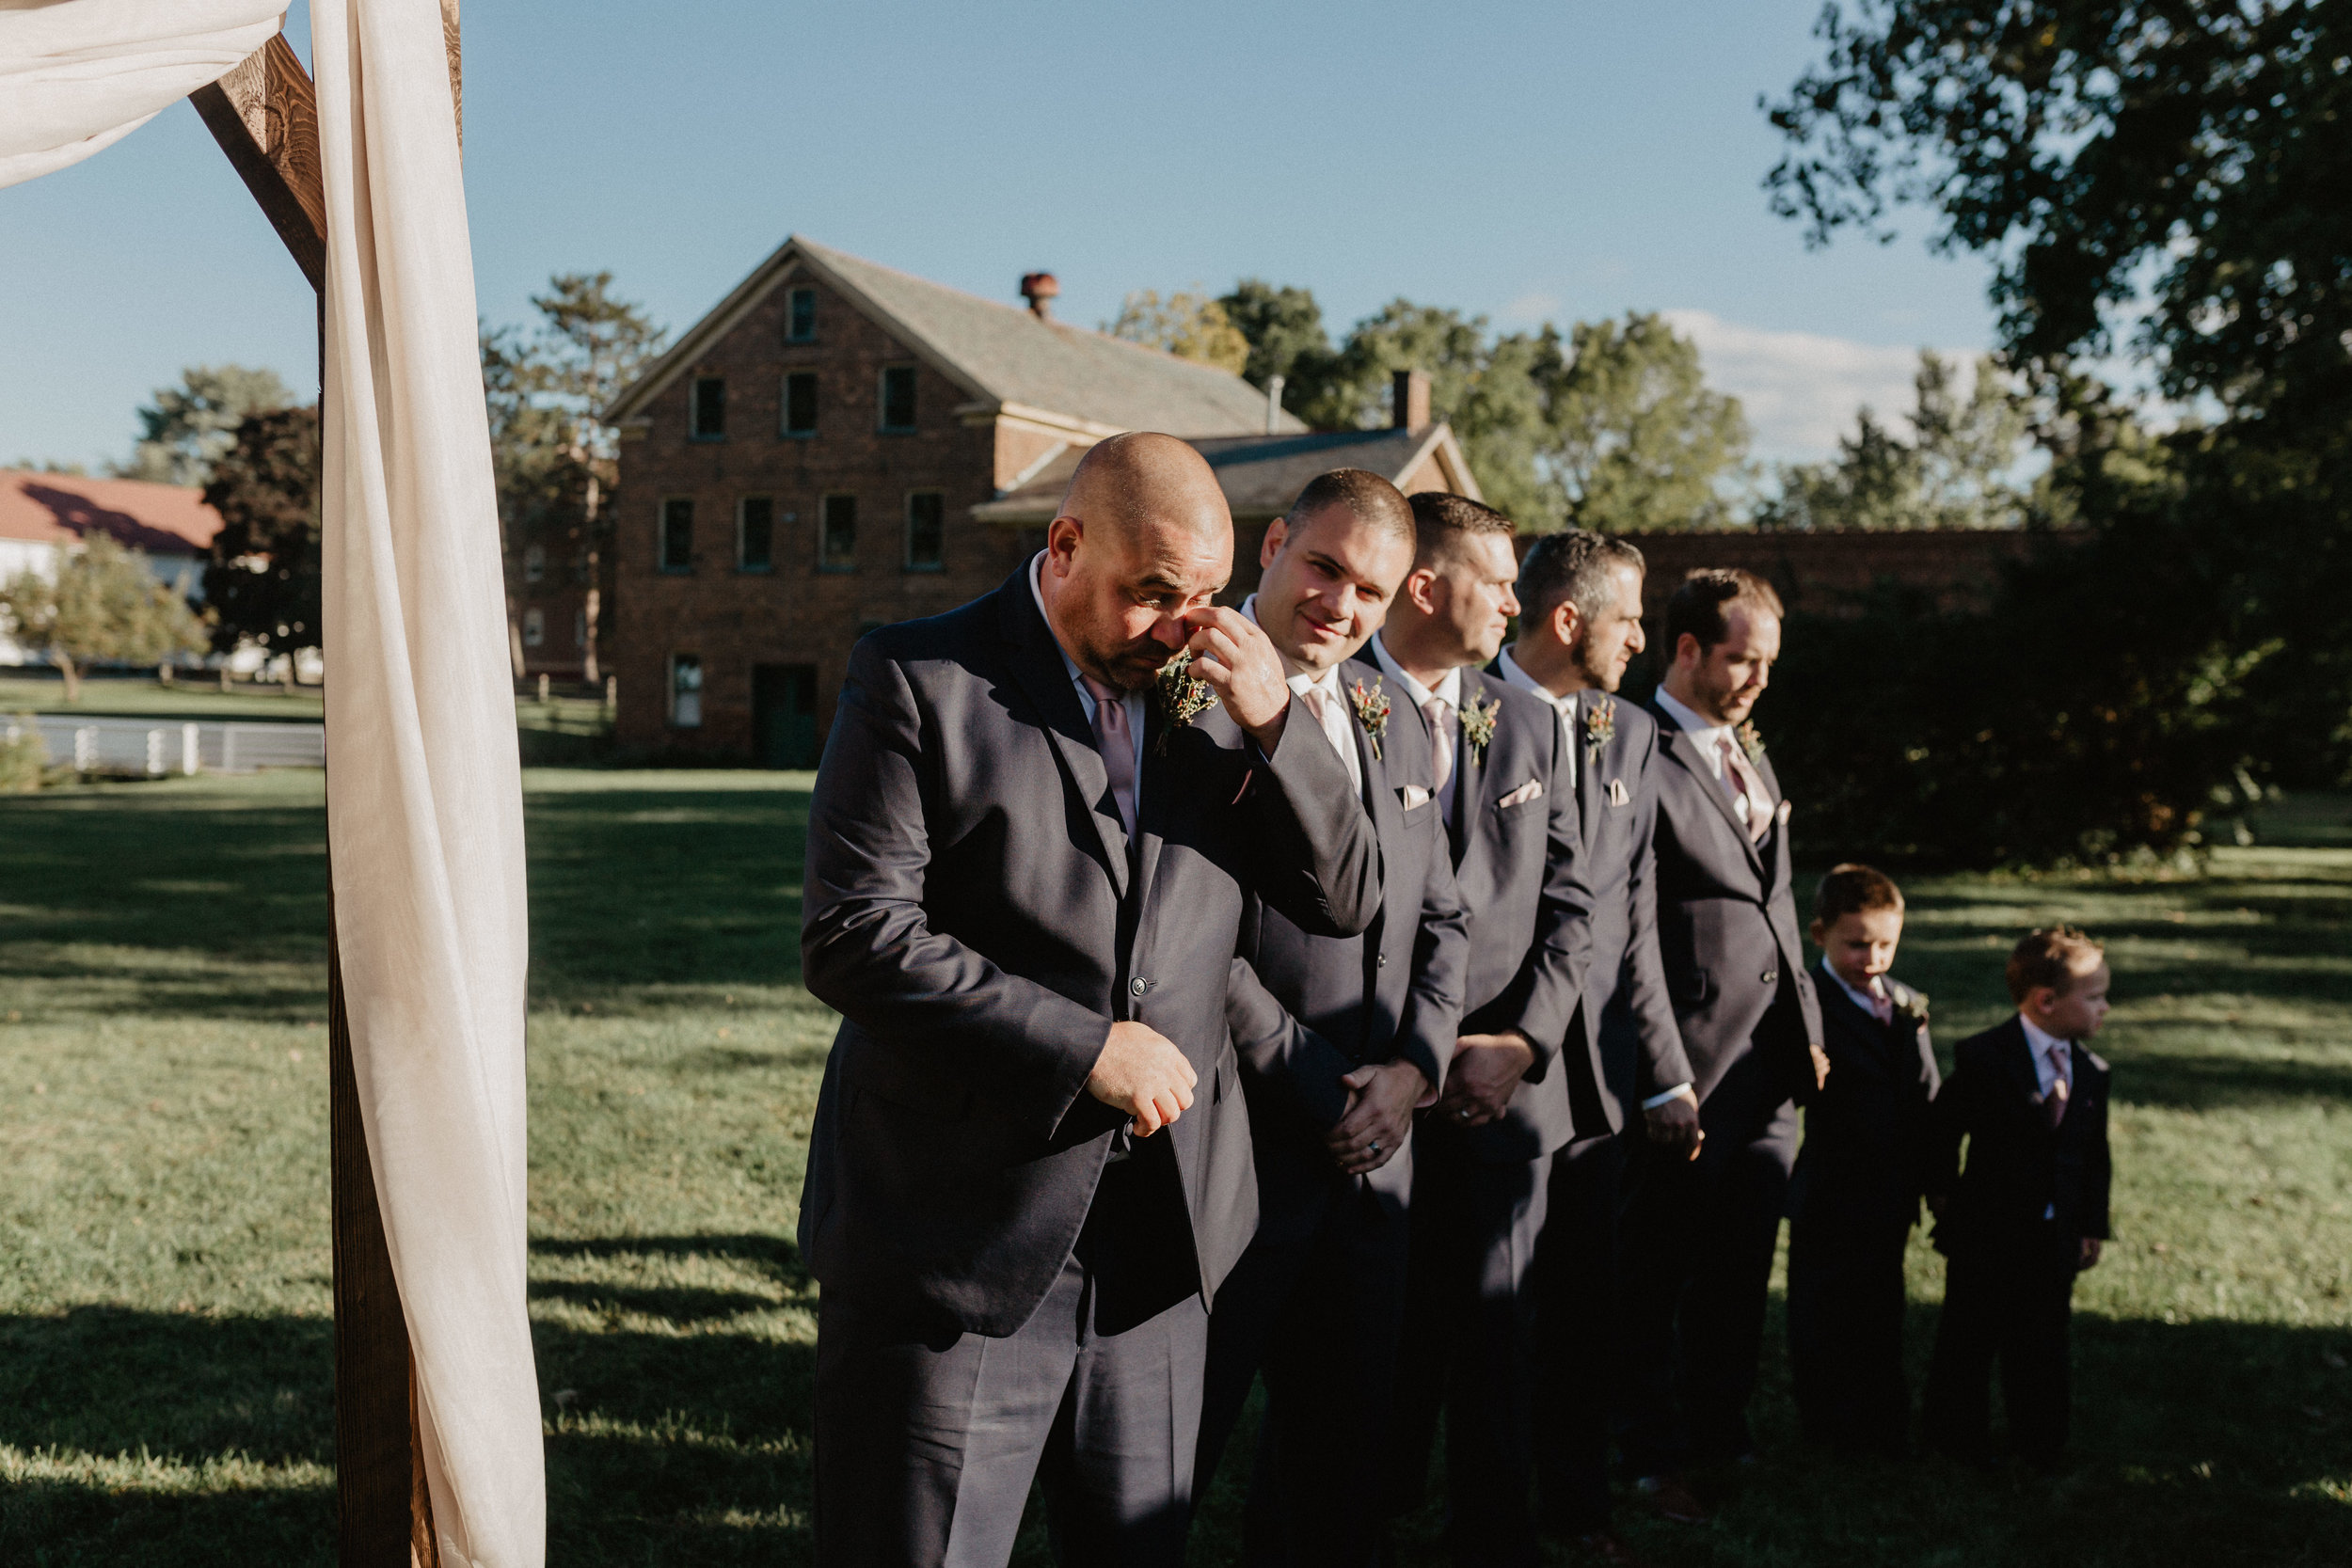 shaker_heritage_barn_wedding_022.jpg